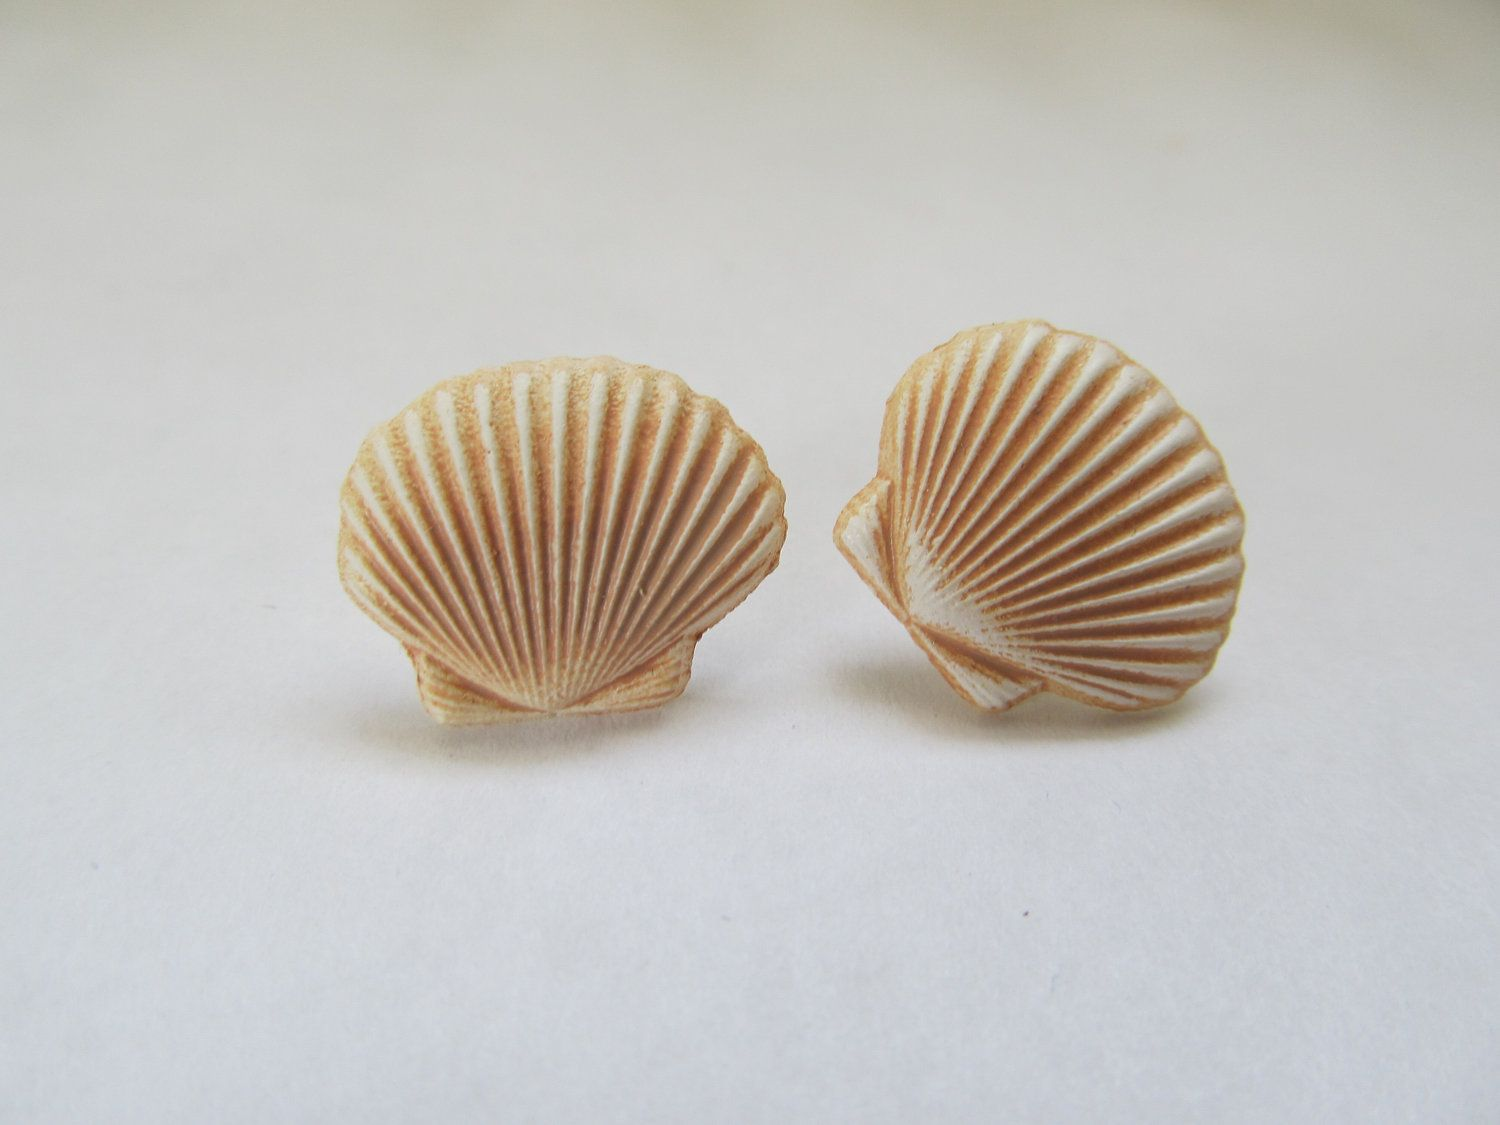 d stud s earrings shell t rosita h bonita i seashell products e u r wave l n g a